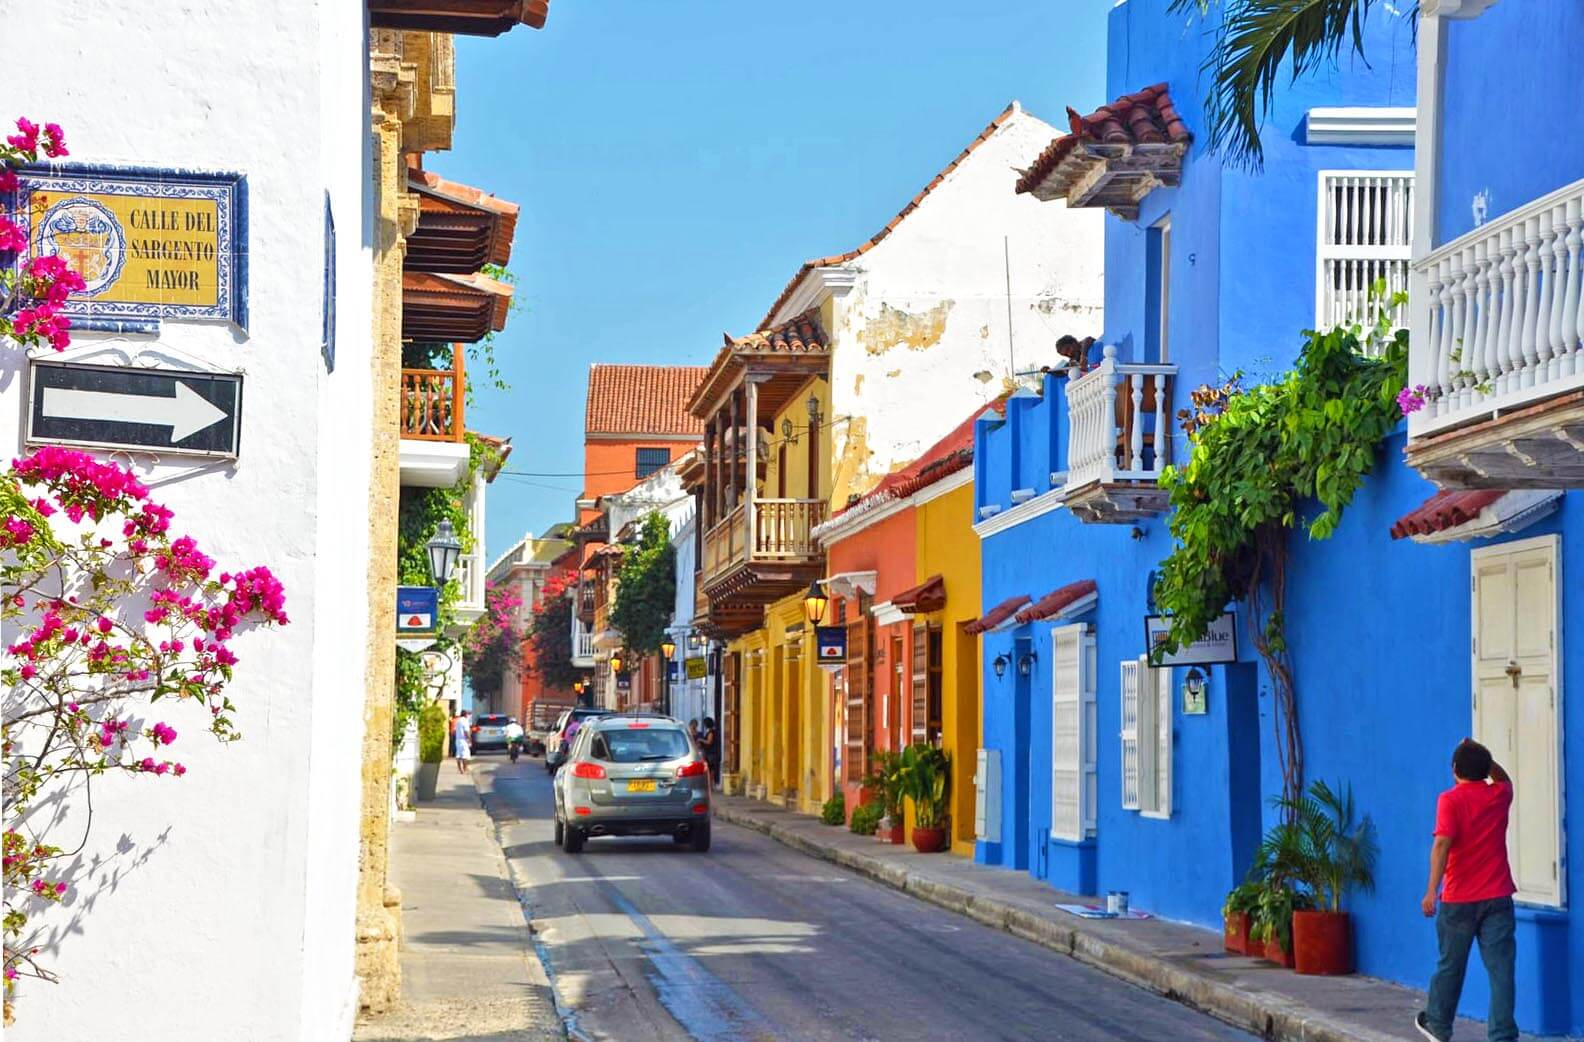 Cartagena de las Indias is an old colonial town in Colombia. Despite its dark history, today it's a thriving, colorful city to visit! We recommend visiting Cartagena as the very last stop on our backpacking Colombia itinerary.